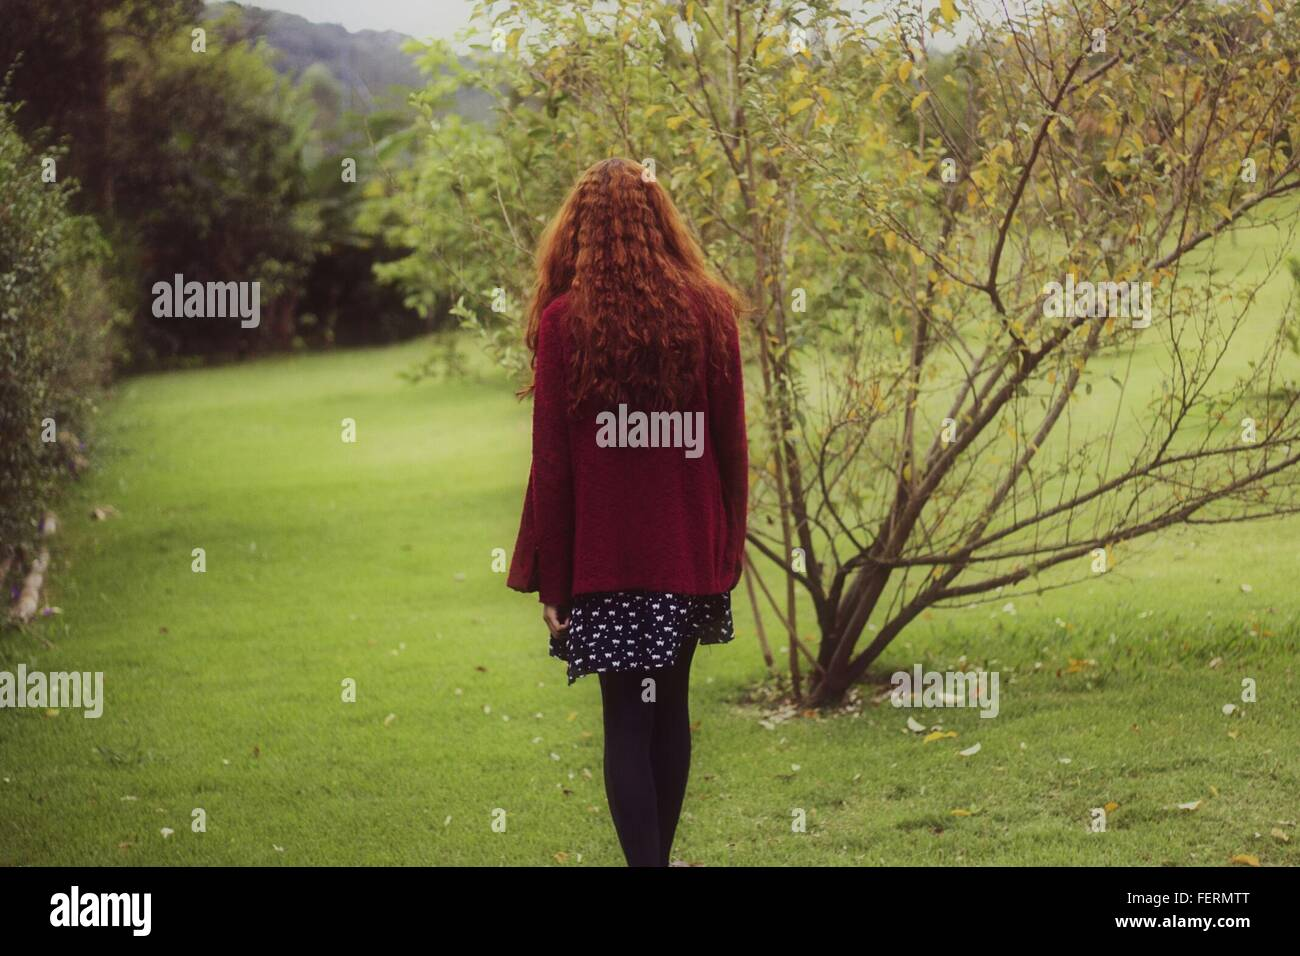 Rear View Of Woman In Park - Stock Image